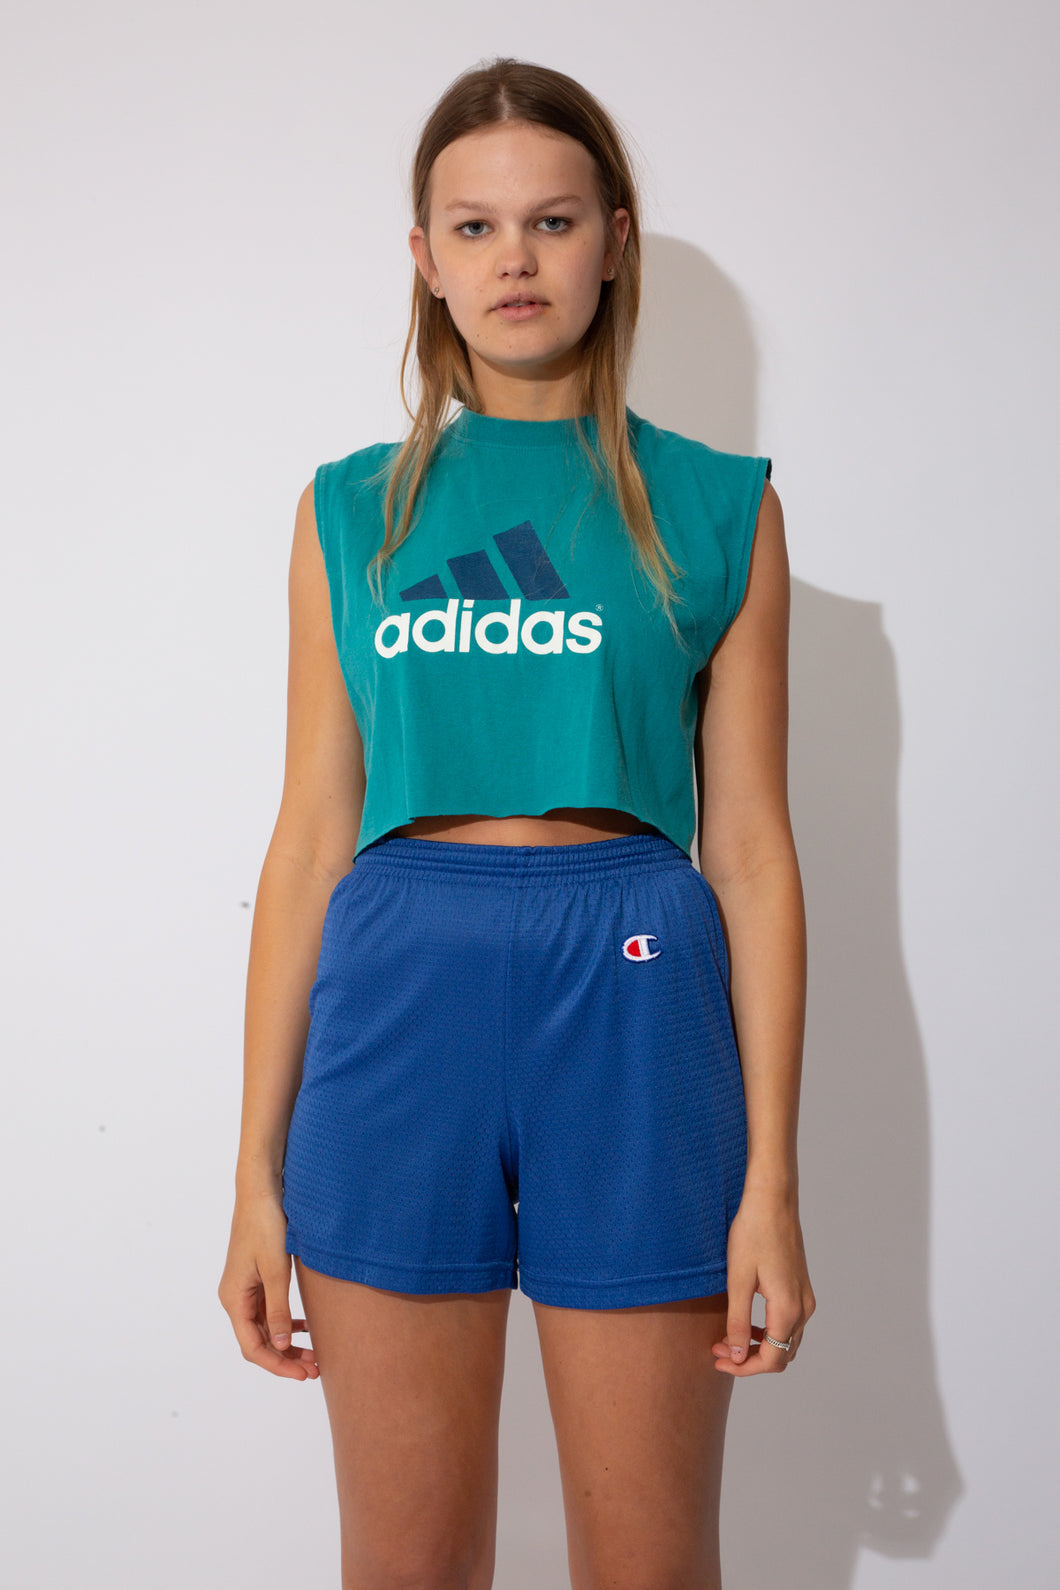 Adidas cropped singlet in teal